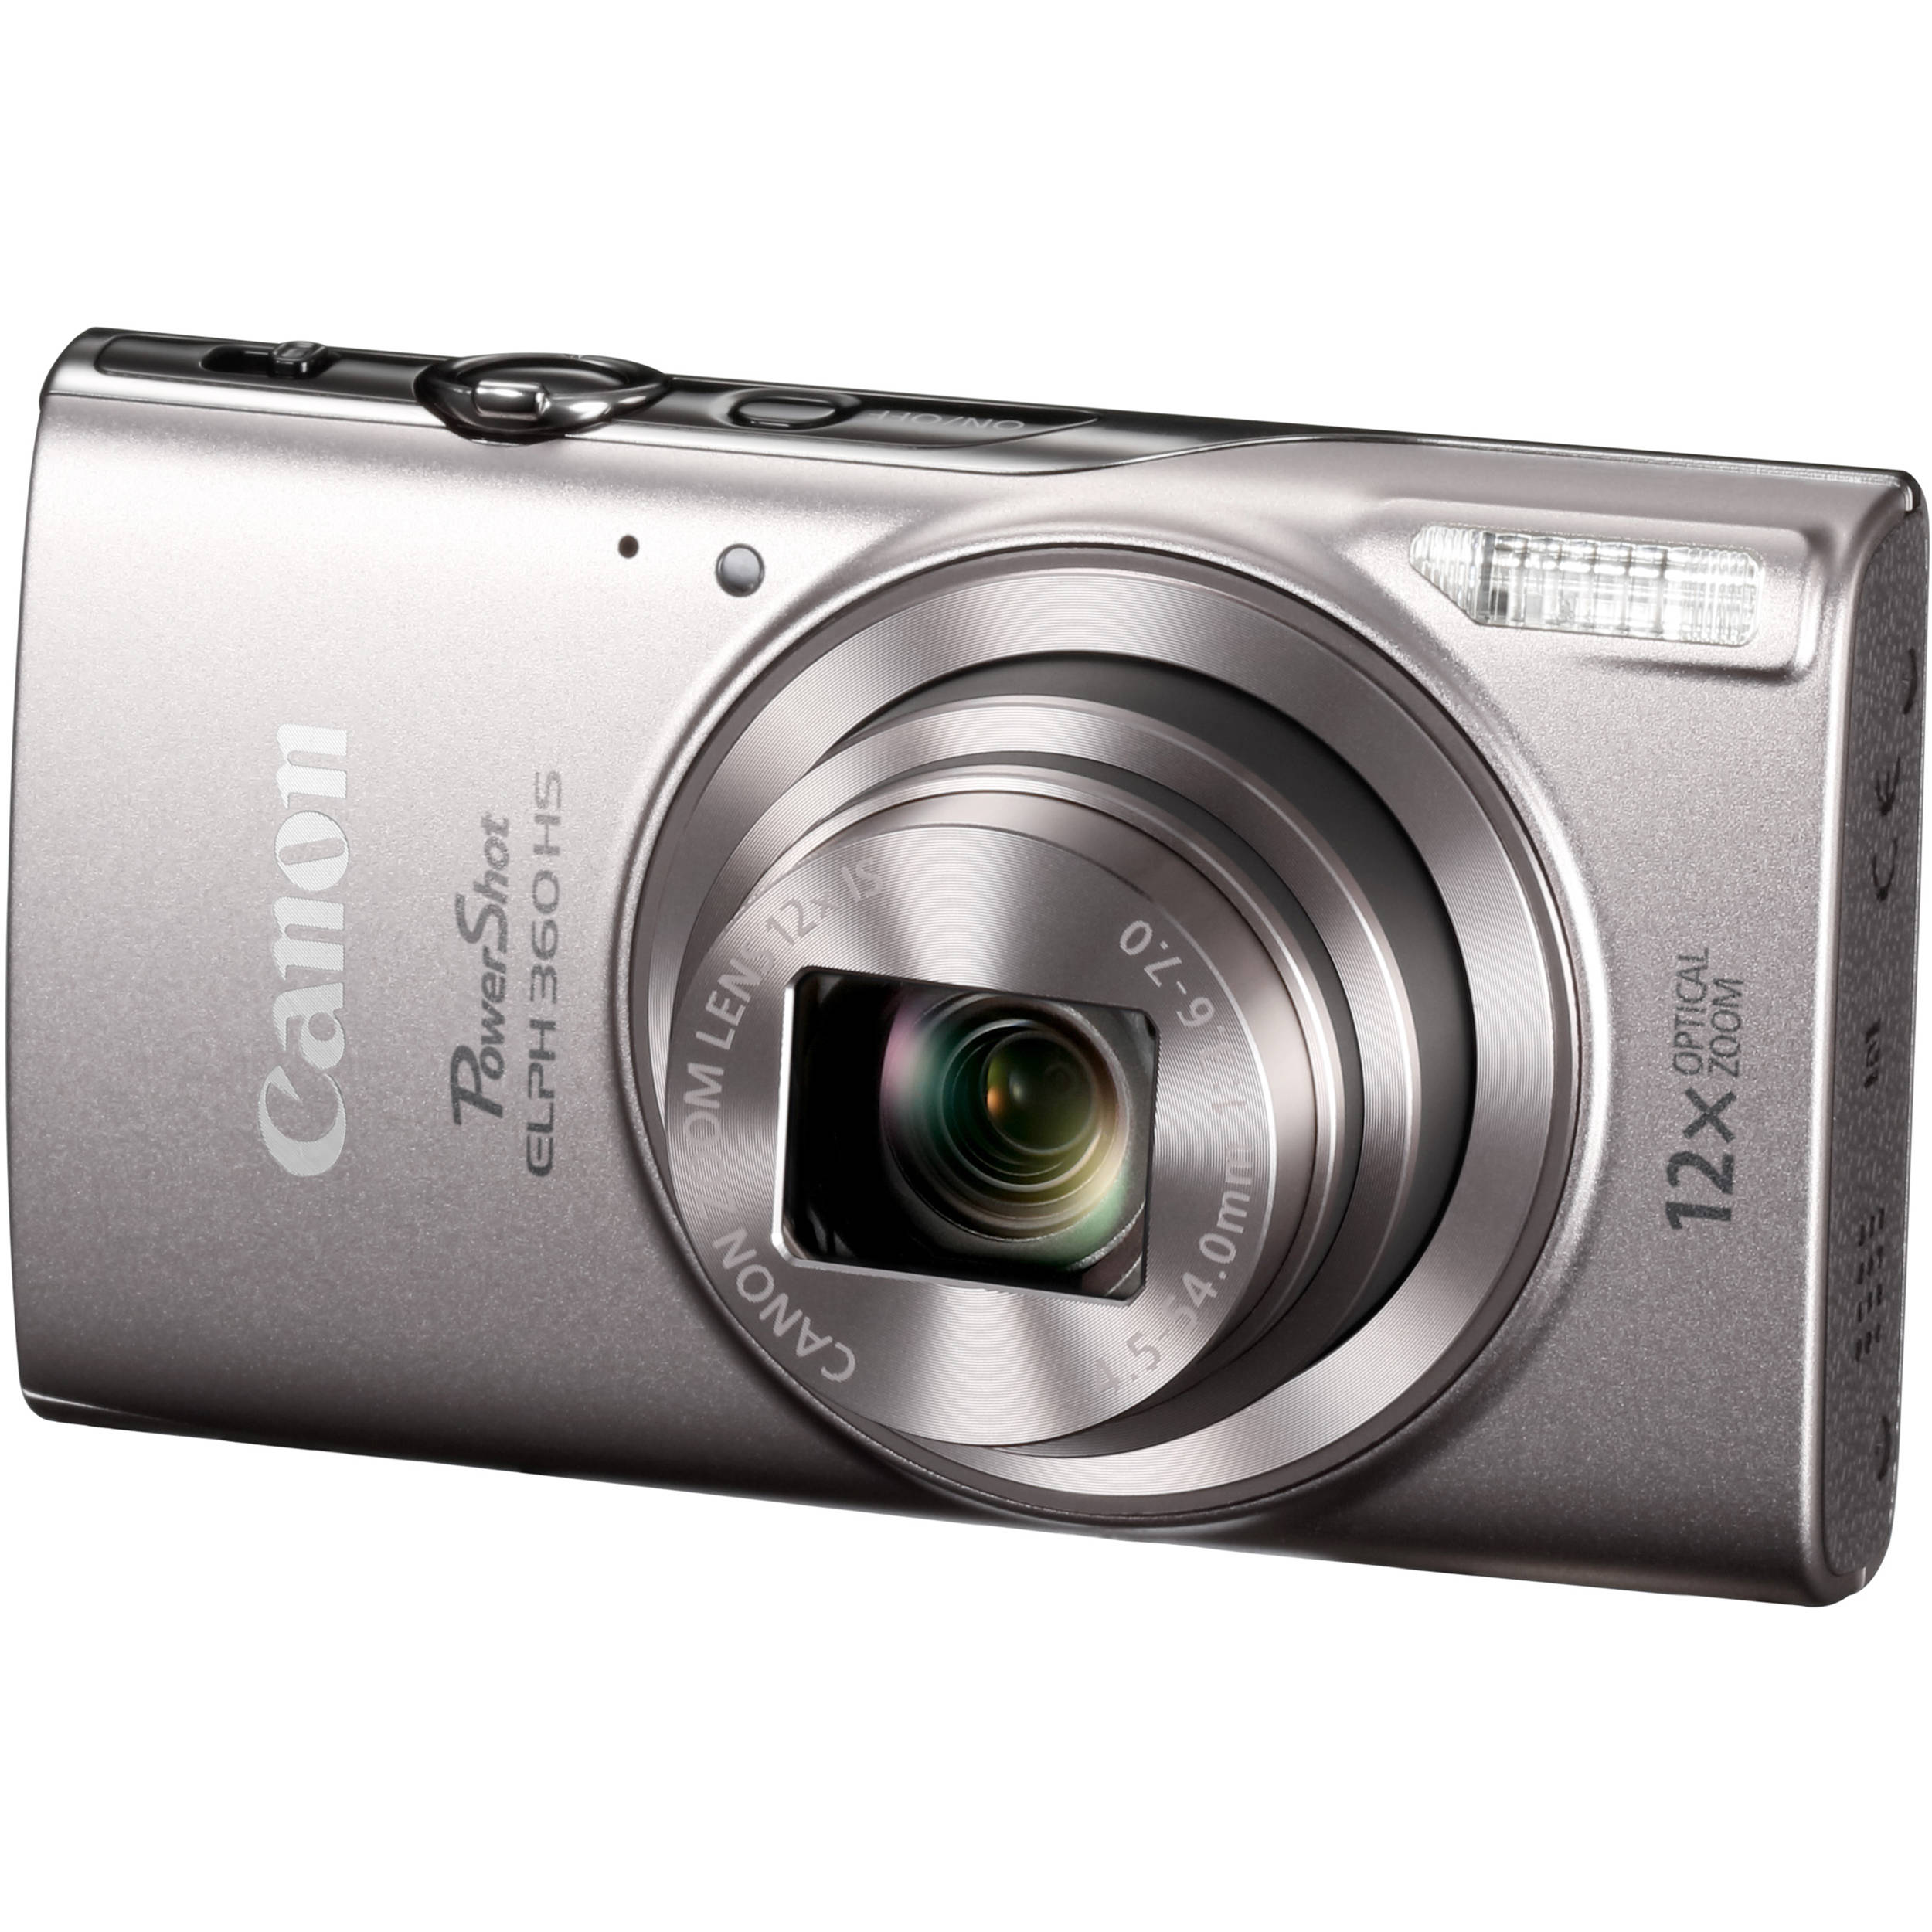 Canon Shot Elph 360 Hs Digital Camera Silver